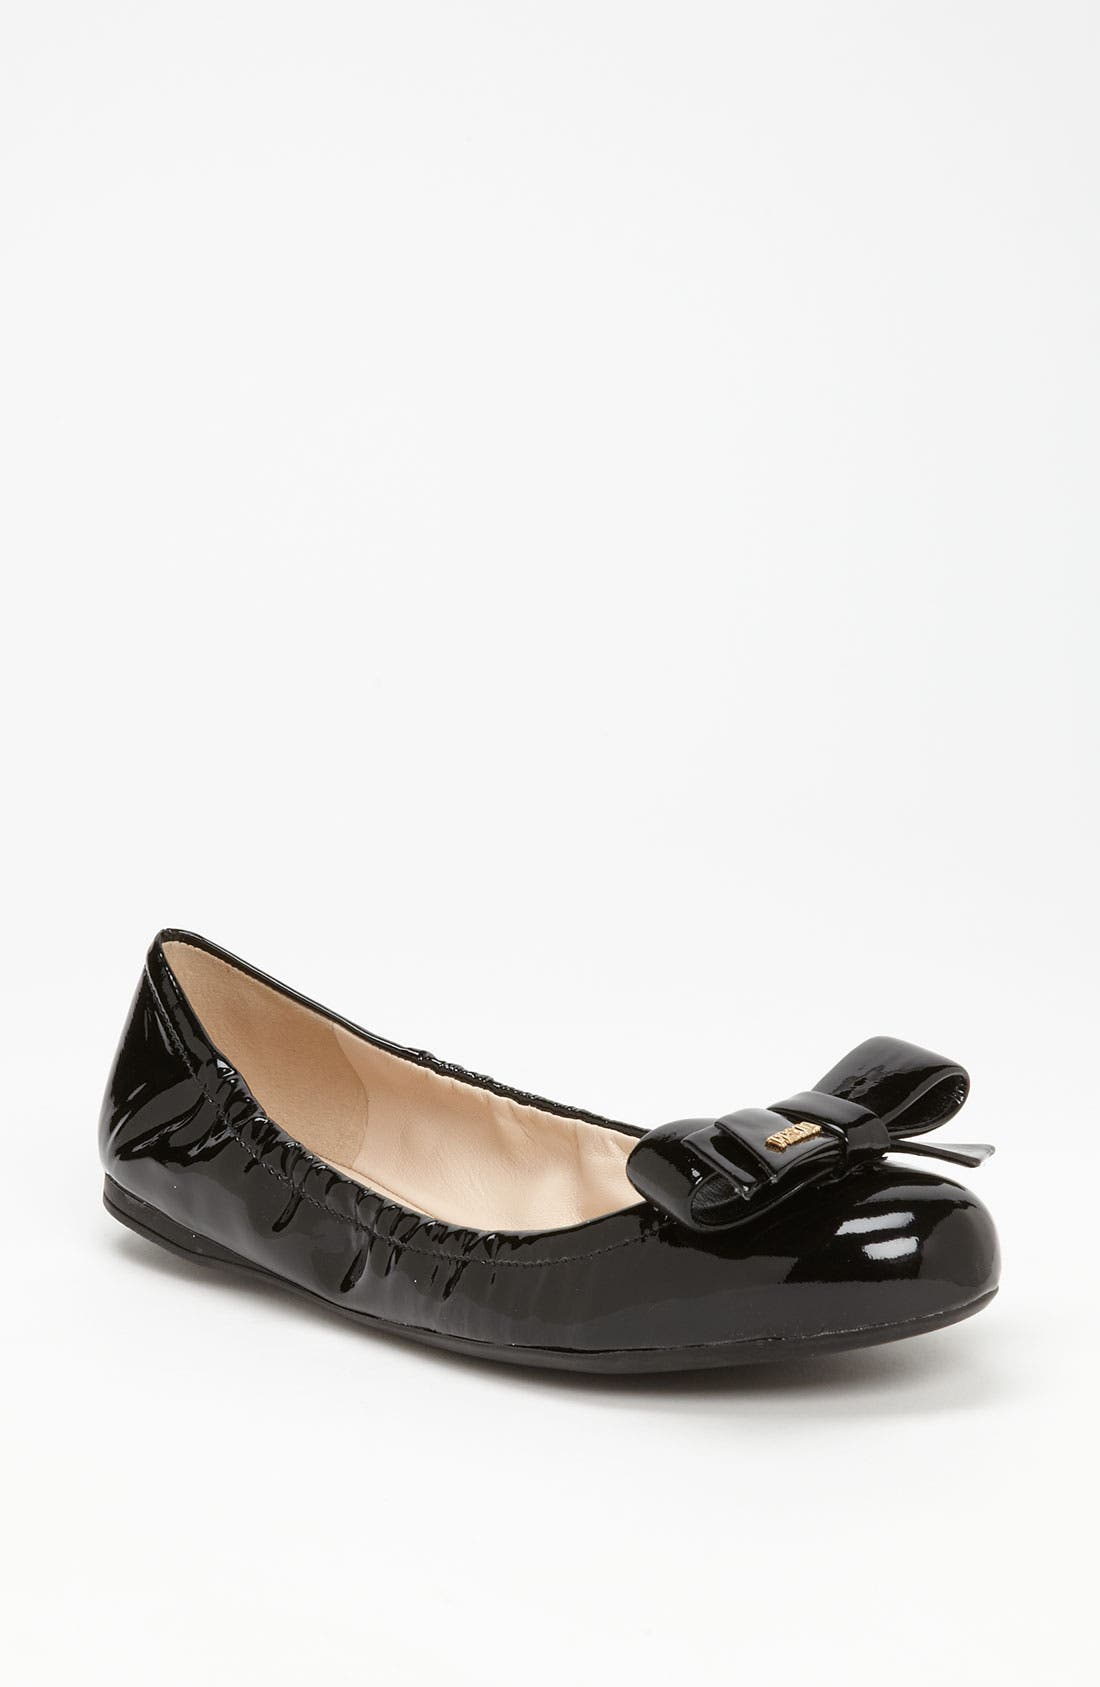 Alternate Image 1 Selected - Prada Bow Ballet Flat